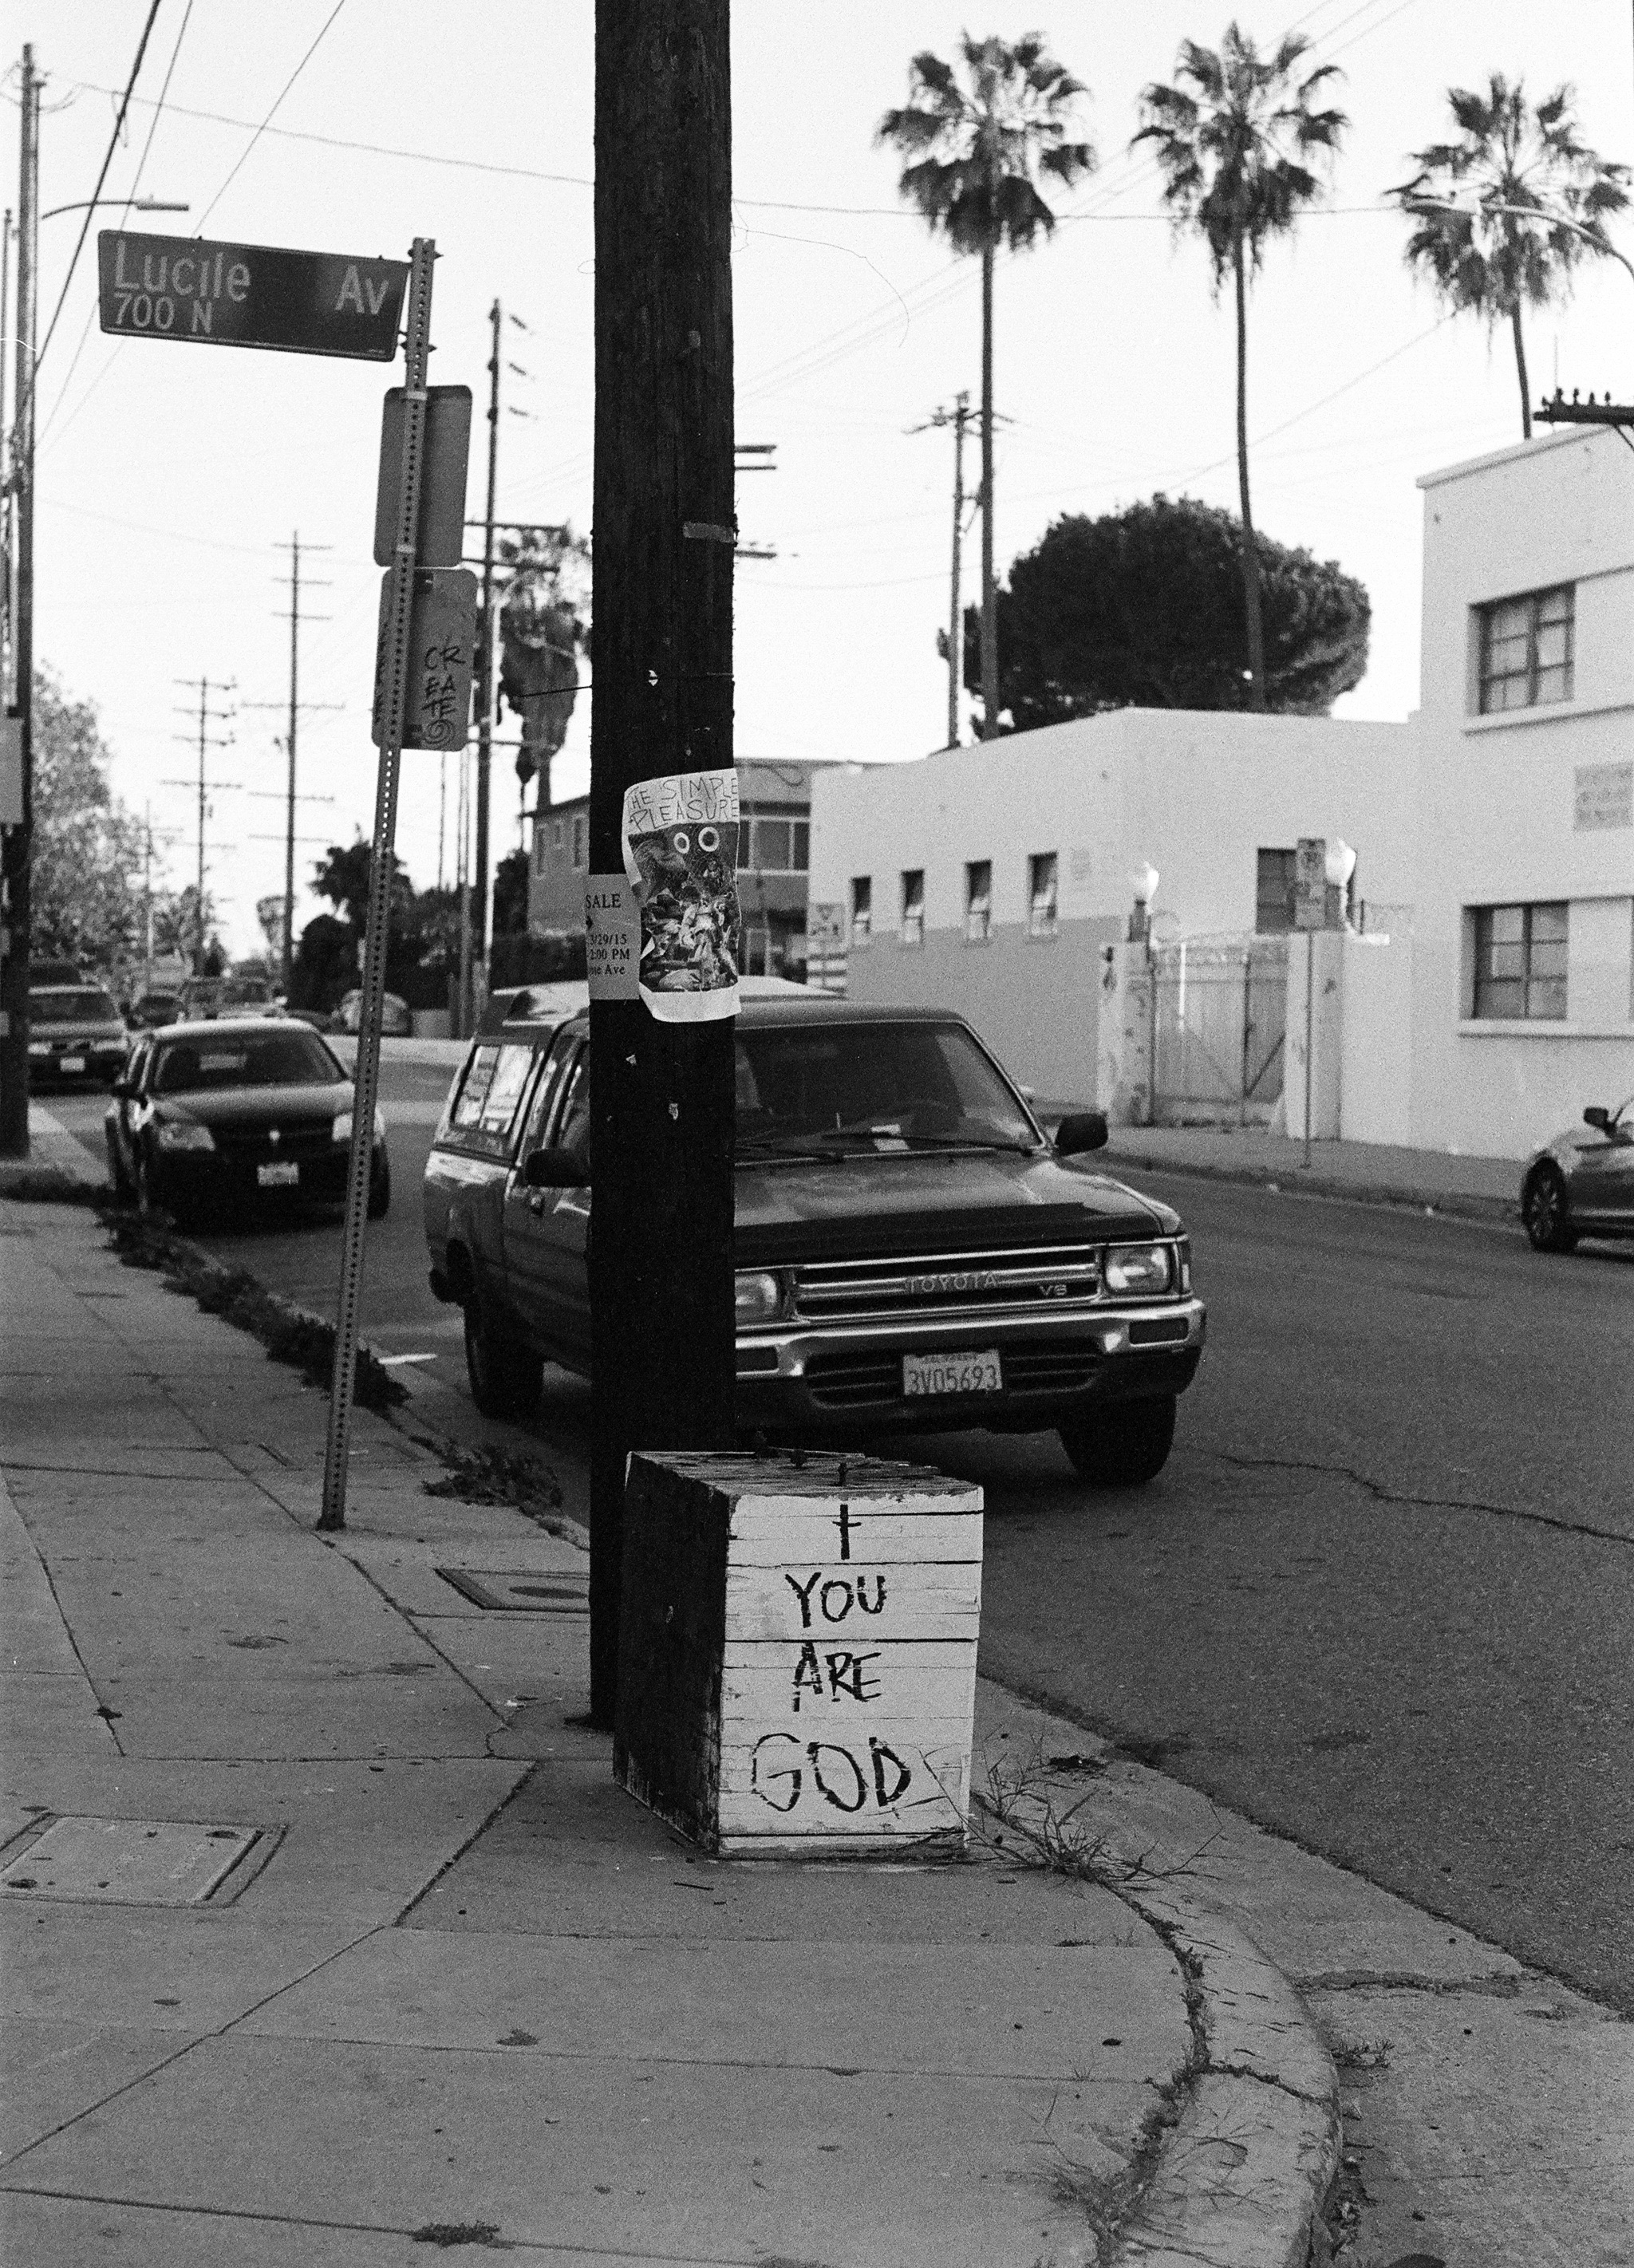 You are god. Silver Lake, CA. 35mm.